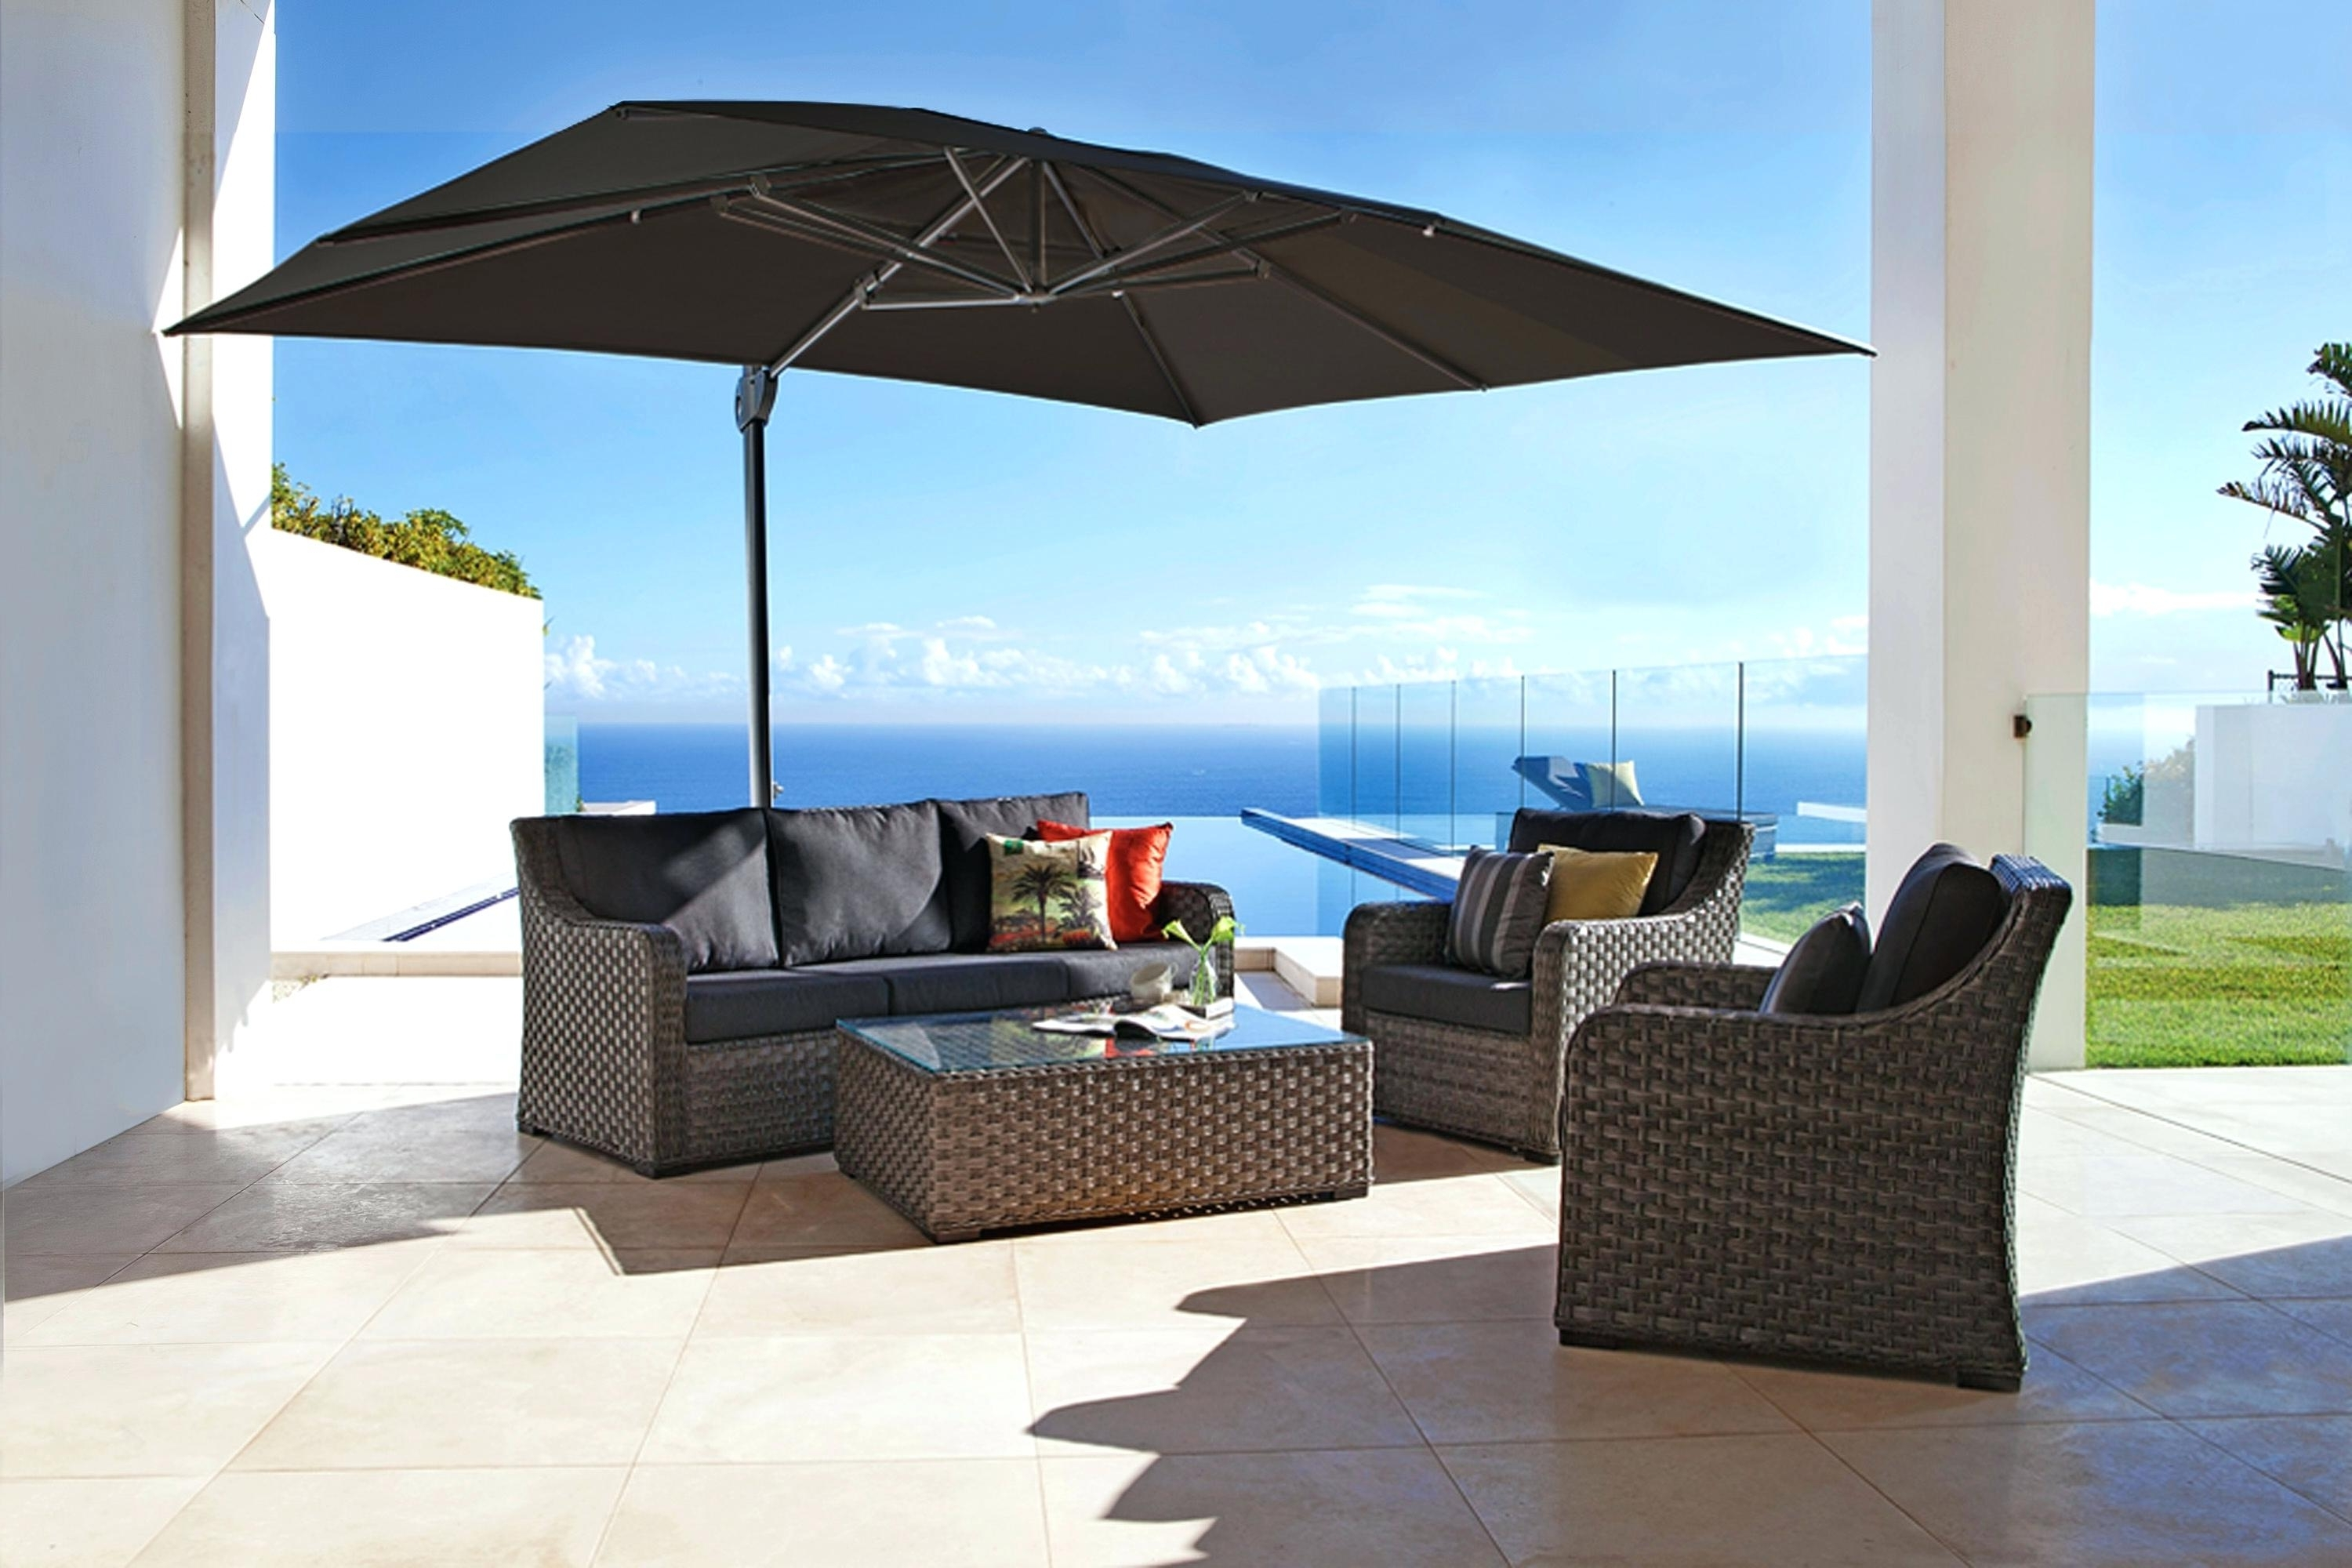 Lowes Patio Umbrella Th Inspiring Covers Canopy Canada With Well Known Patio Umbrella Covers (View 16 of 20)